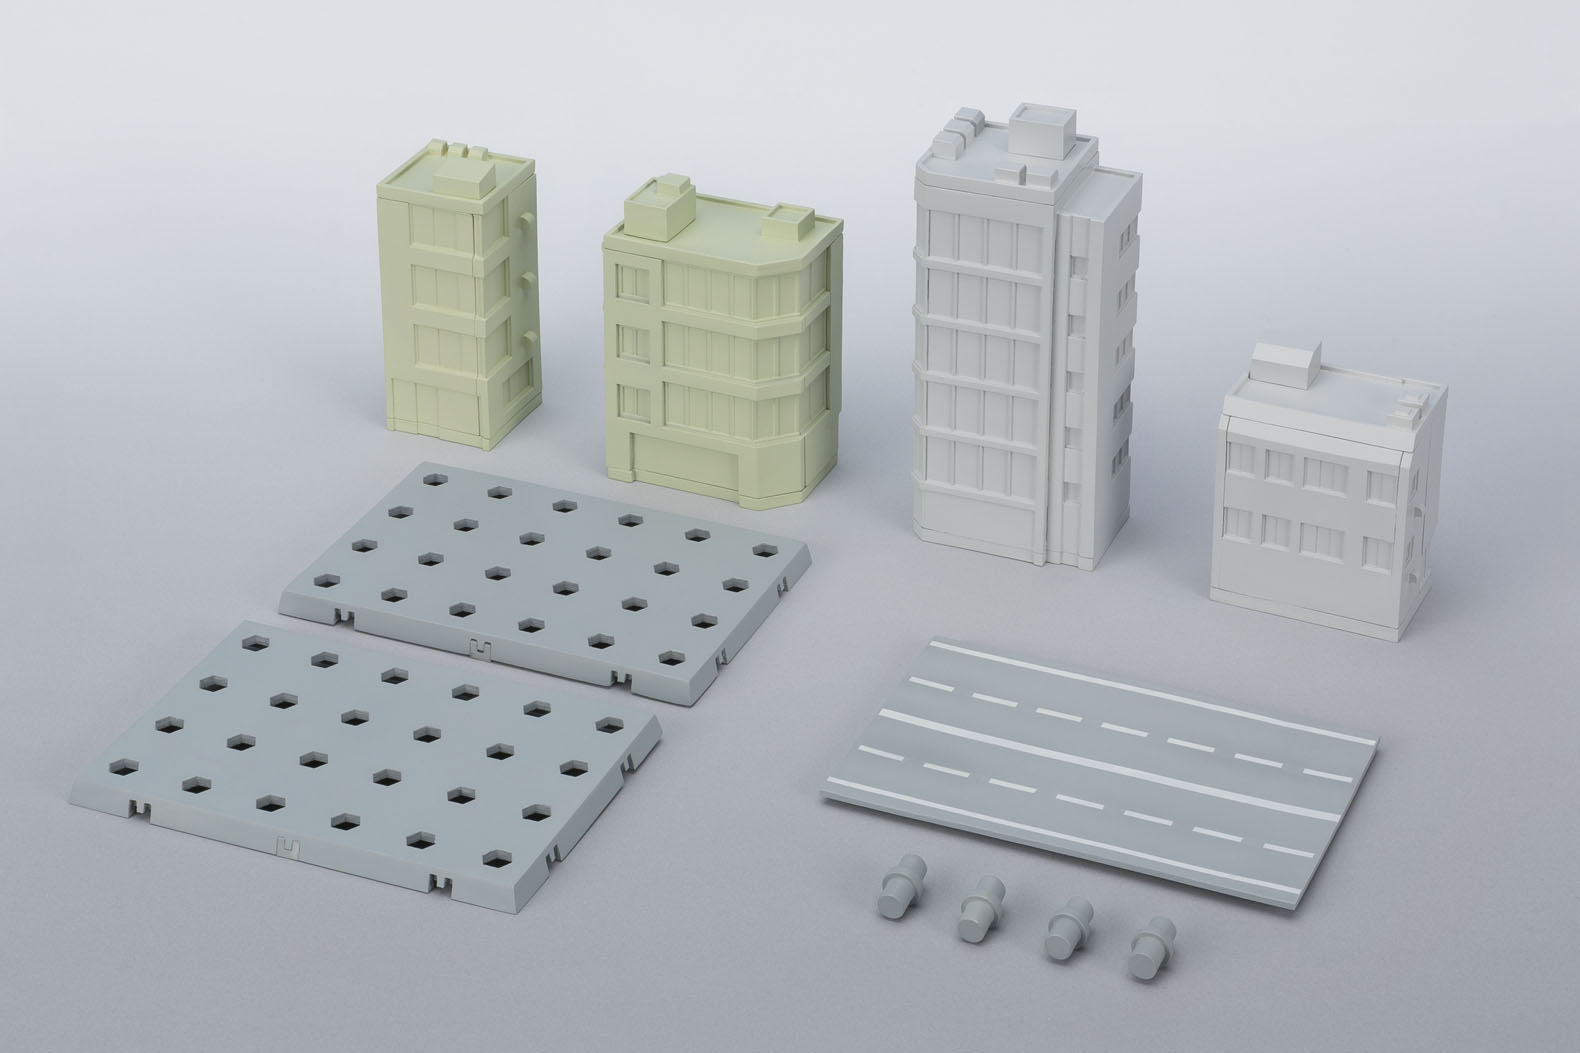 ACT BUILDING EDIFICIOS SET TAMASHII OPTION